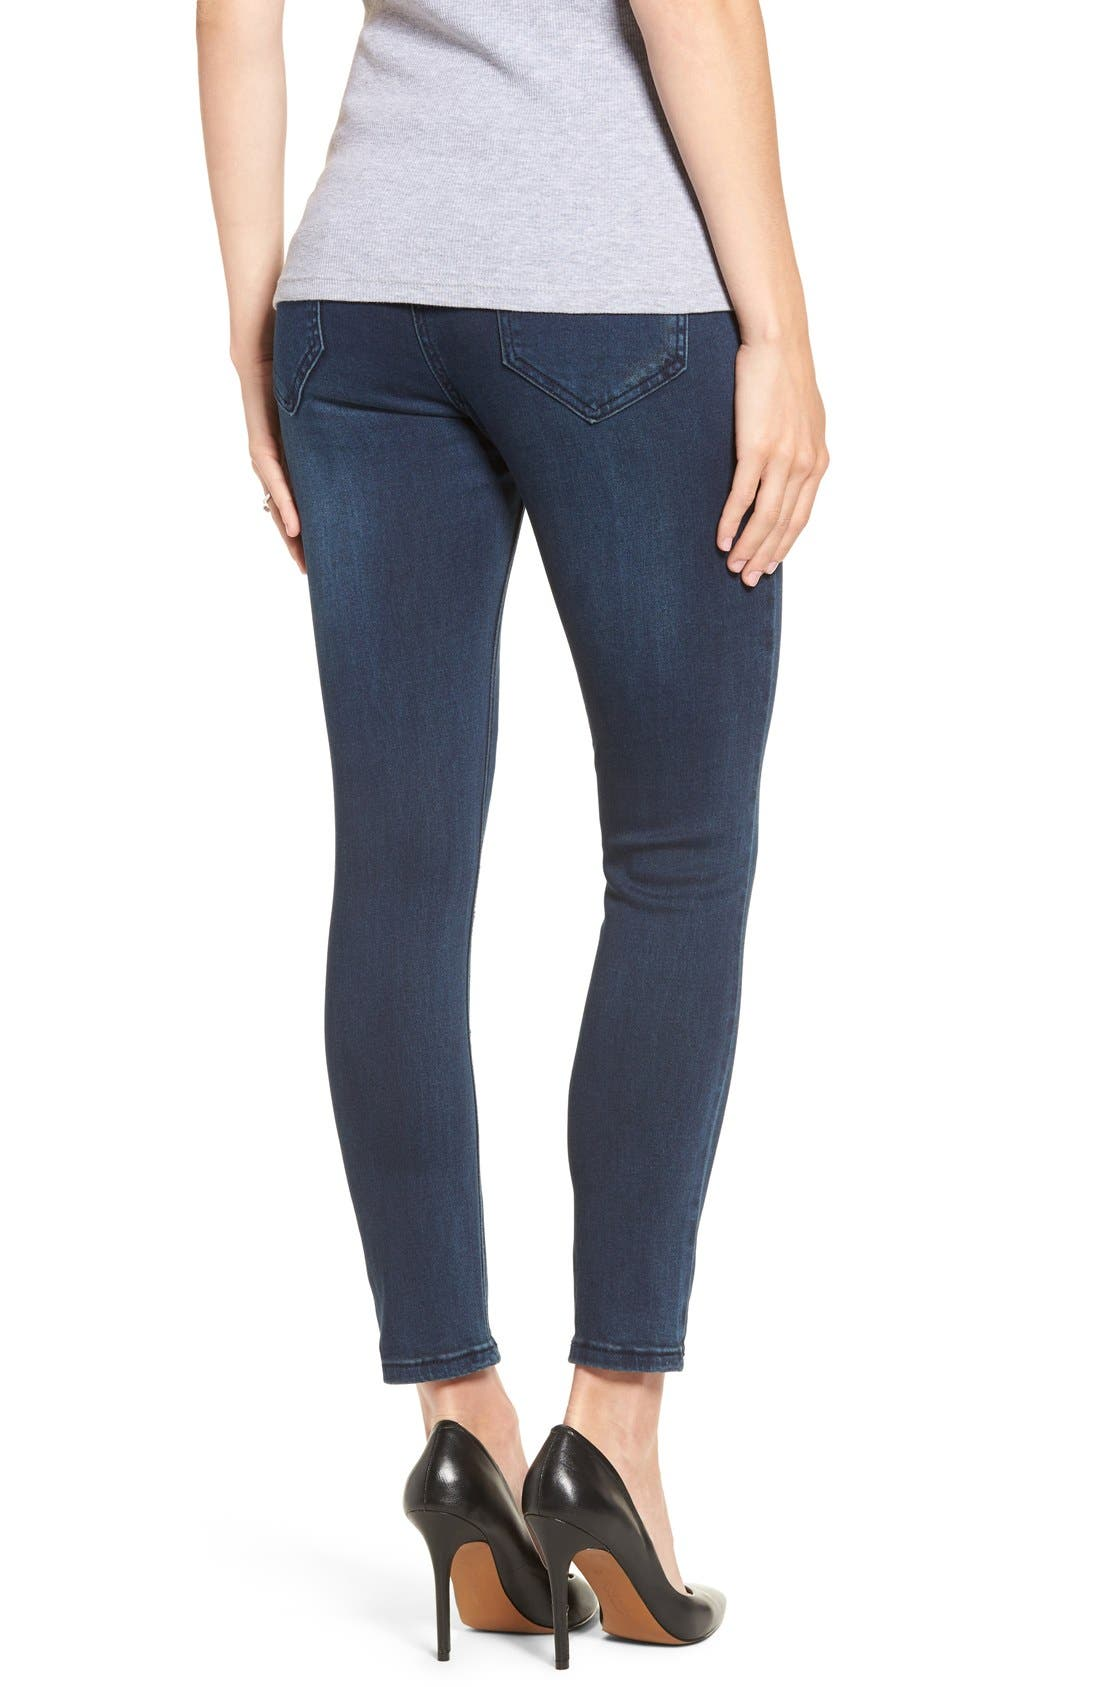 DistressedSkinnyMaternity Jeans,                             Alternate thumbnail 2, color,                             CLASSIC WASH